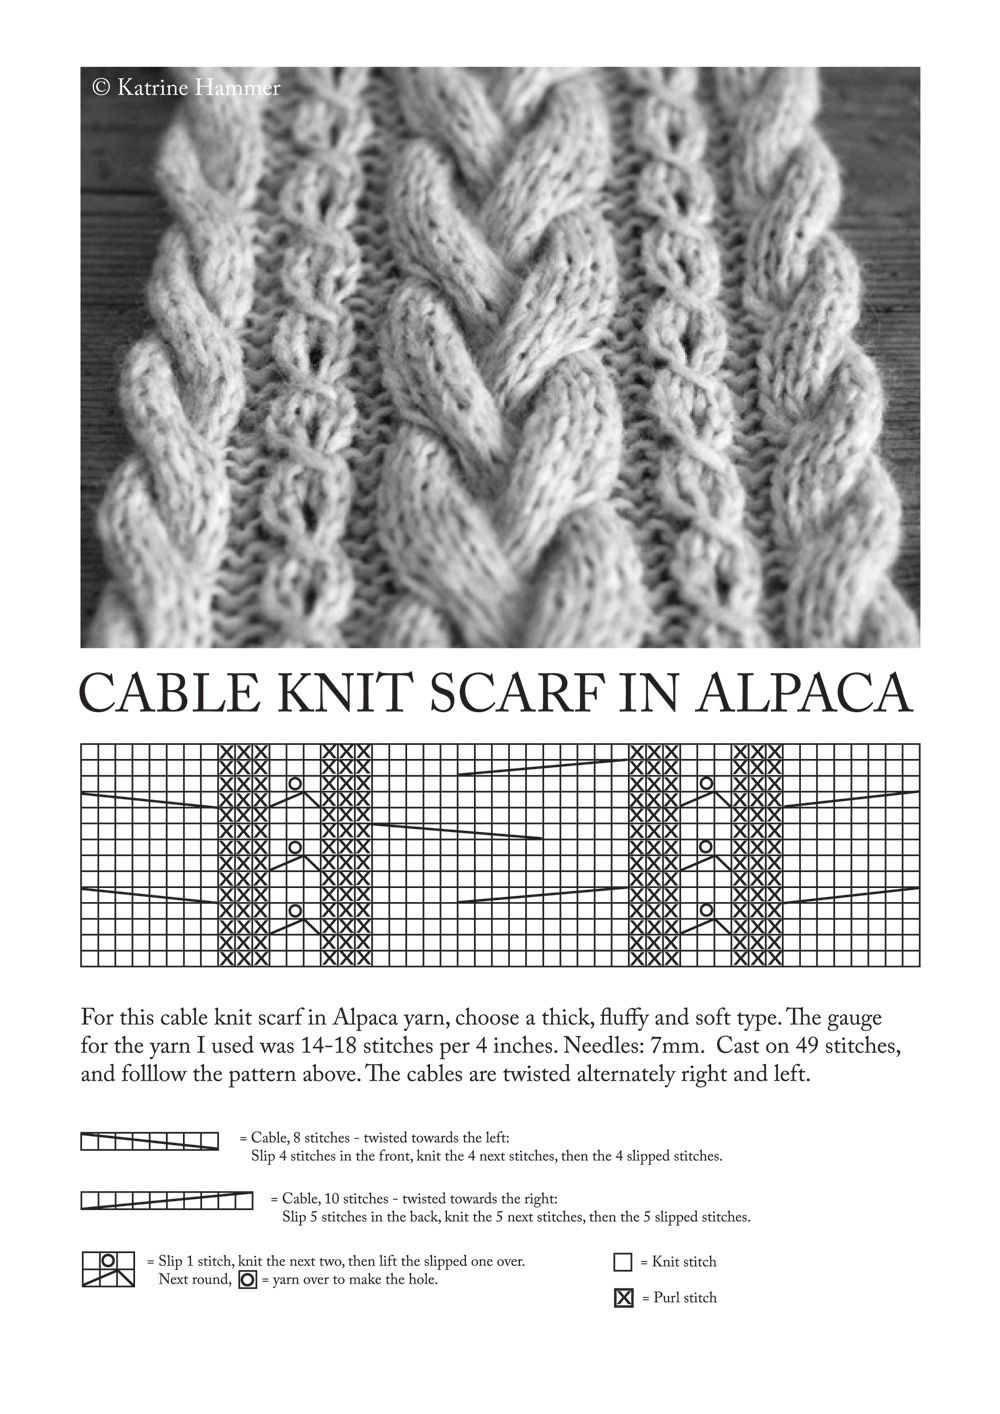 32. Learn how to knit cables | Örgüm | Pinterest | Cable, Tejido y ...